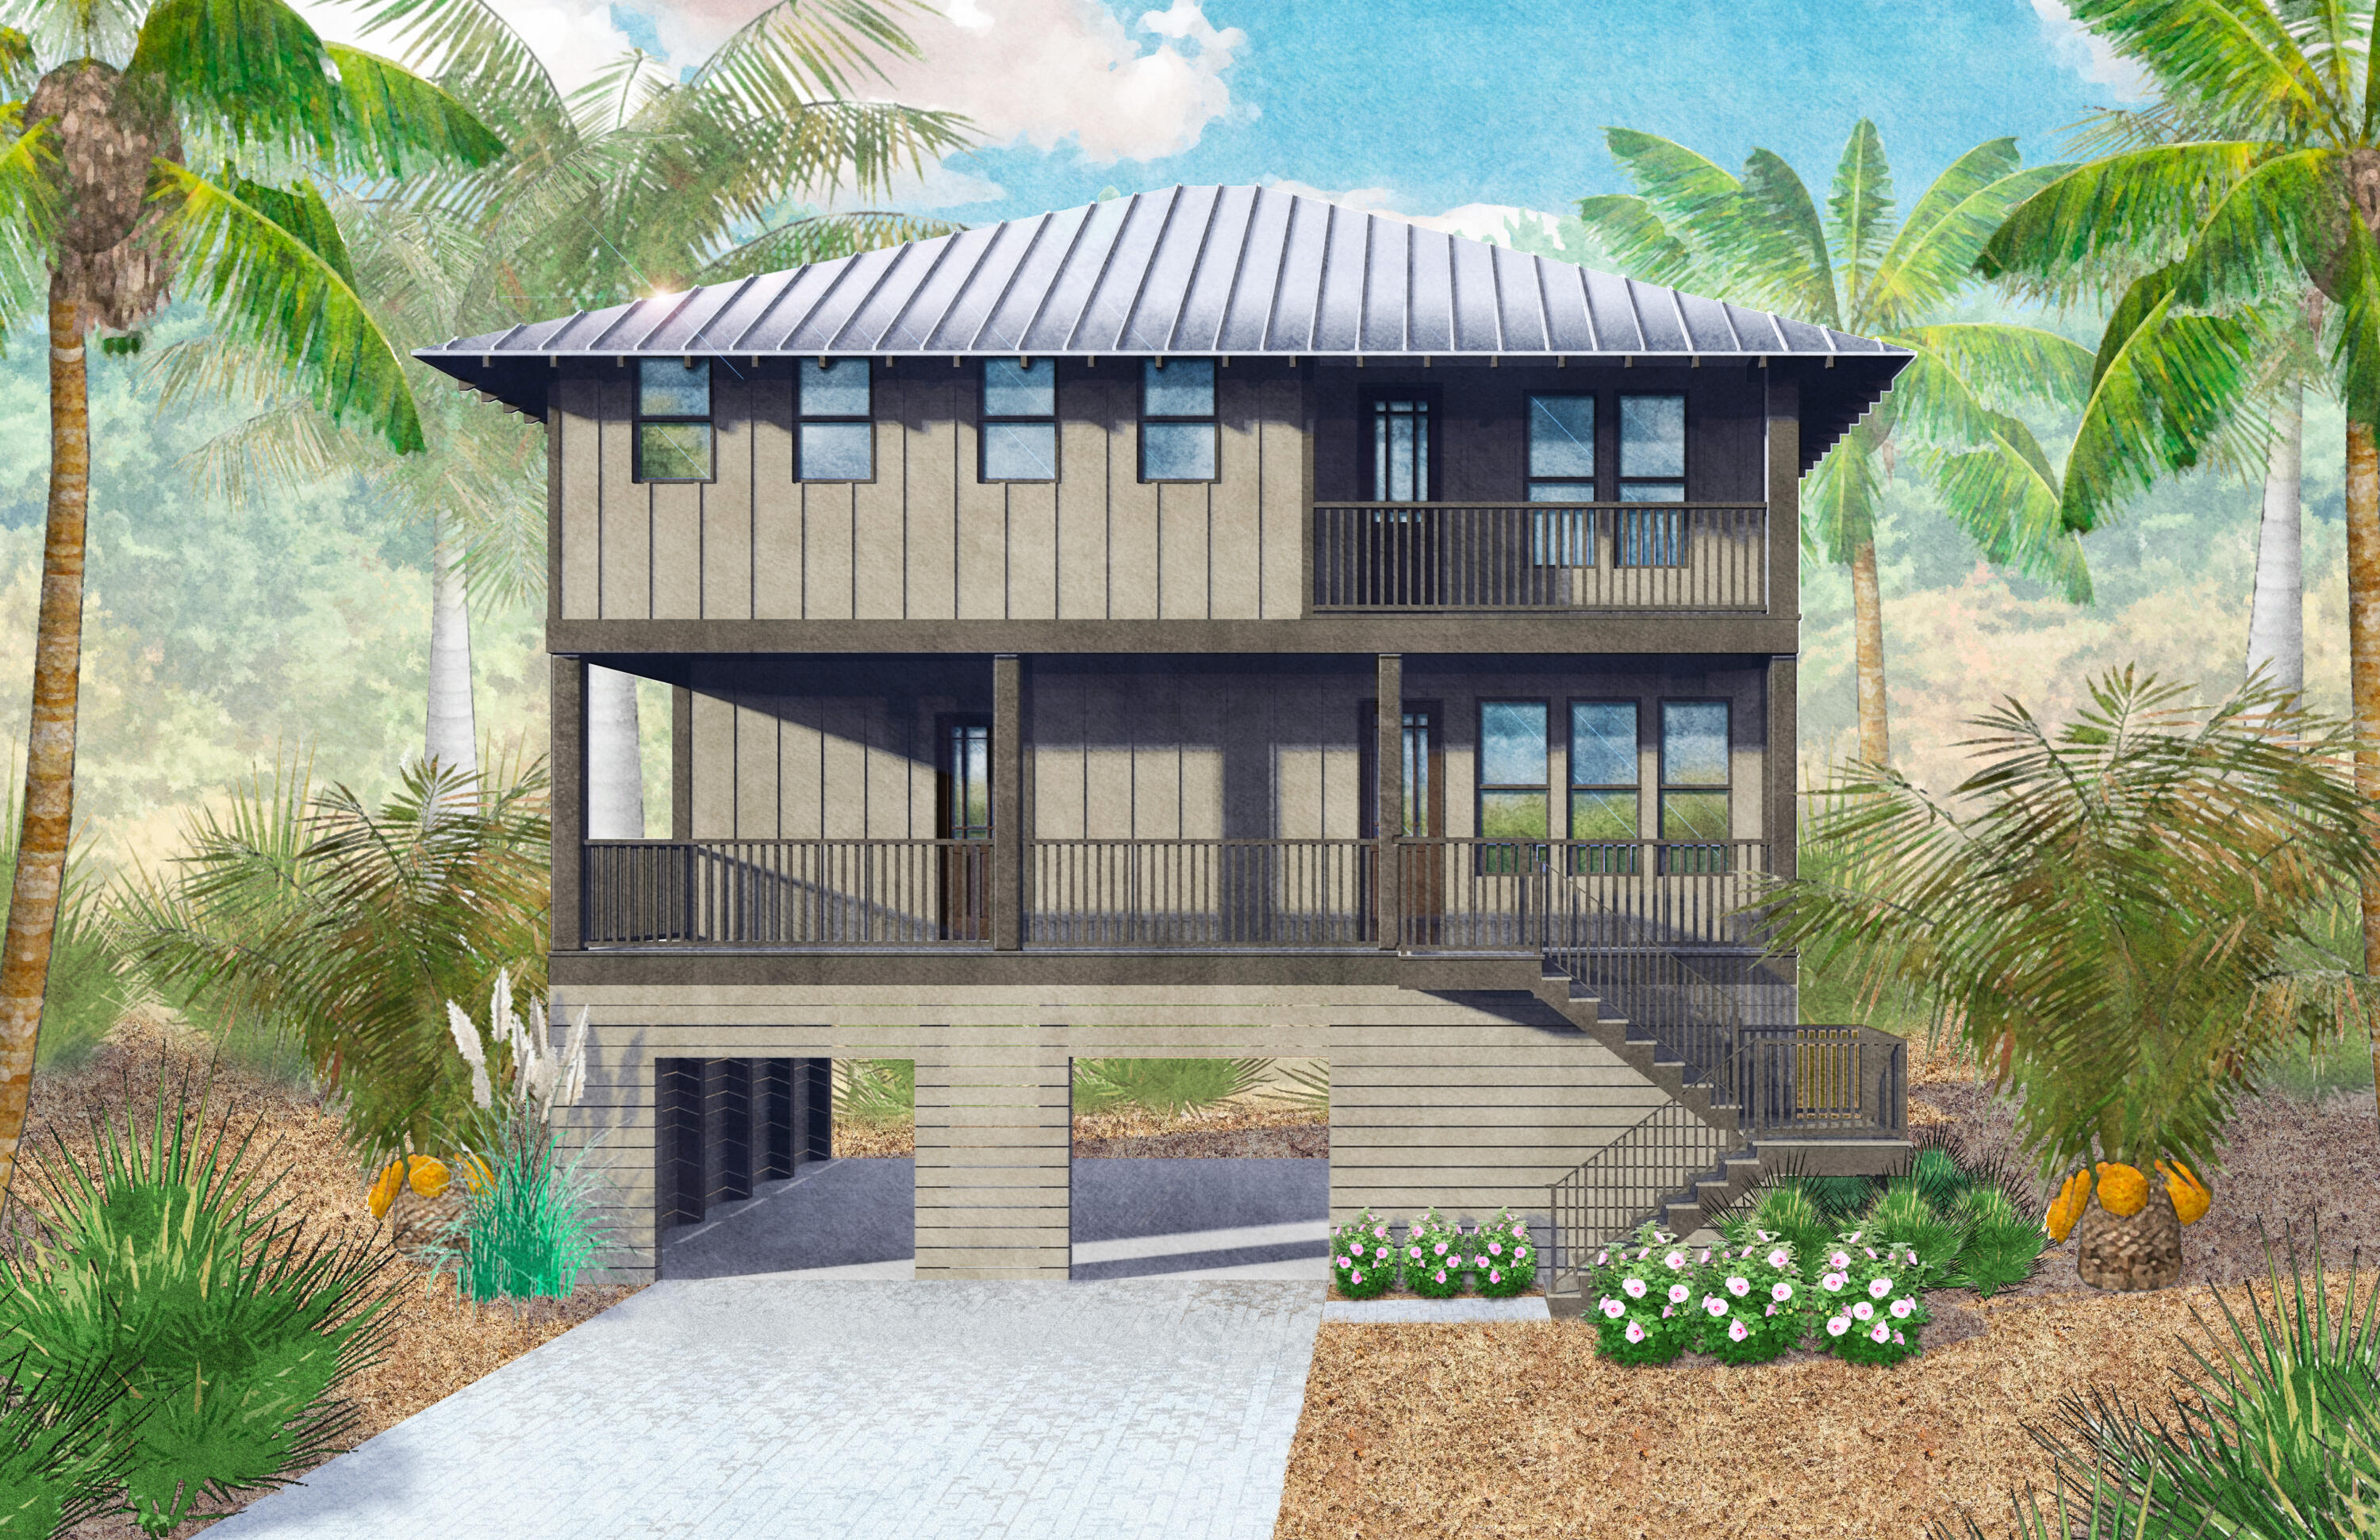 Welcome to RiverCamps, the premiere GATED BAYfront community! Nestled within loblolly pine woods are